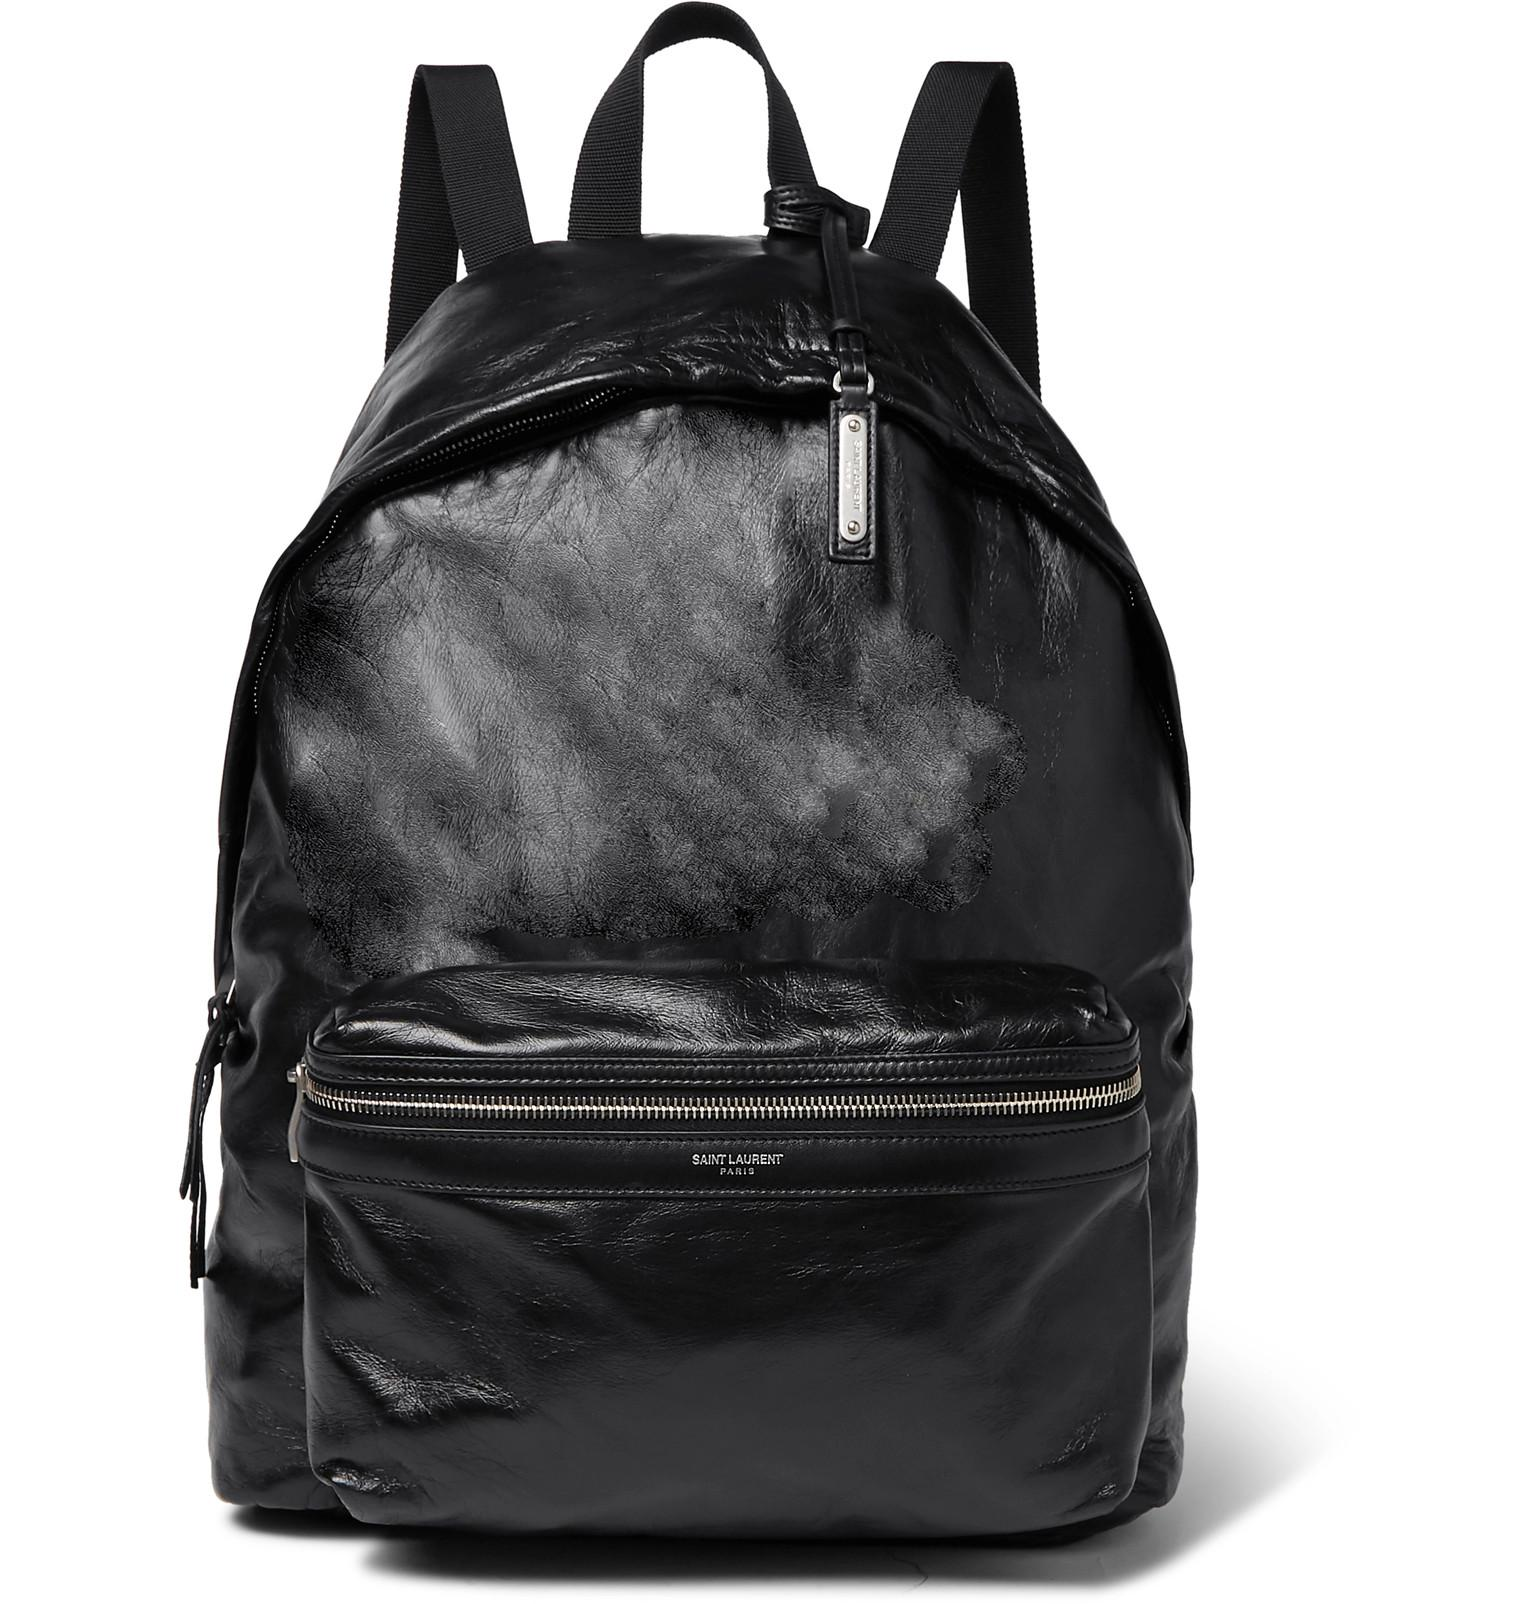 b9f058e1abc50 Saint Laurent Polished Textured-leather Backpack in Black for Men - Lyst